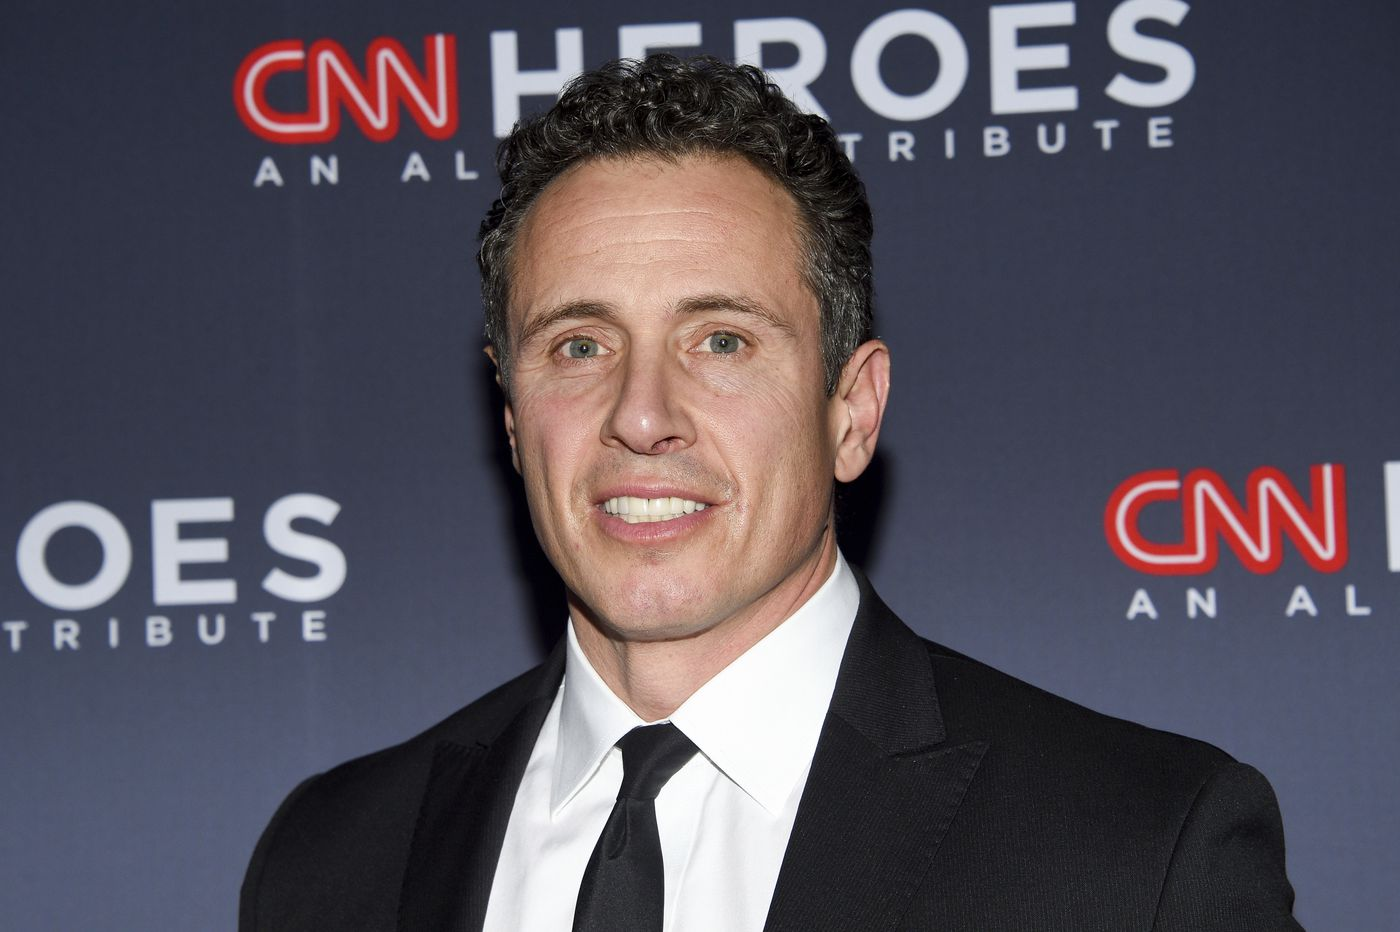 Chris Cuomo should chill out. 'Fredo' is not a racial slur against Italians. | Christine Flowers